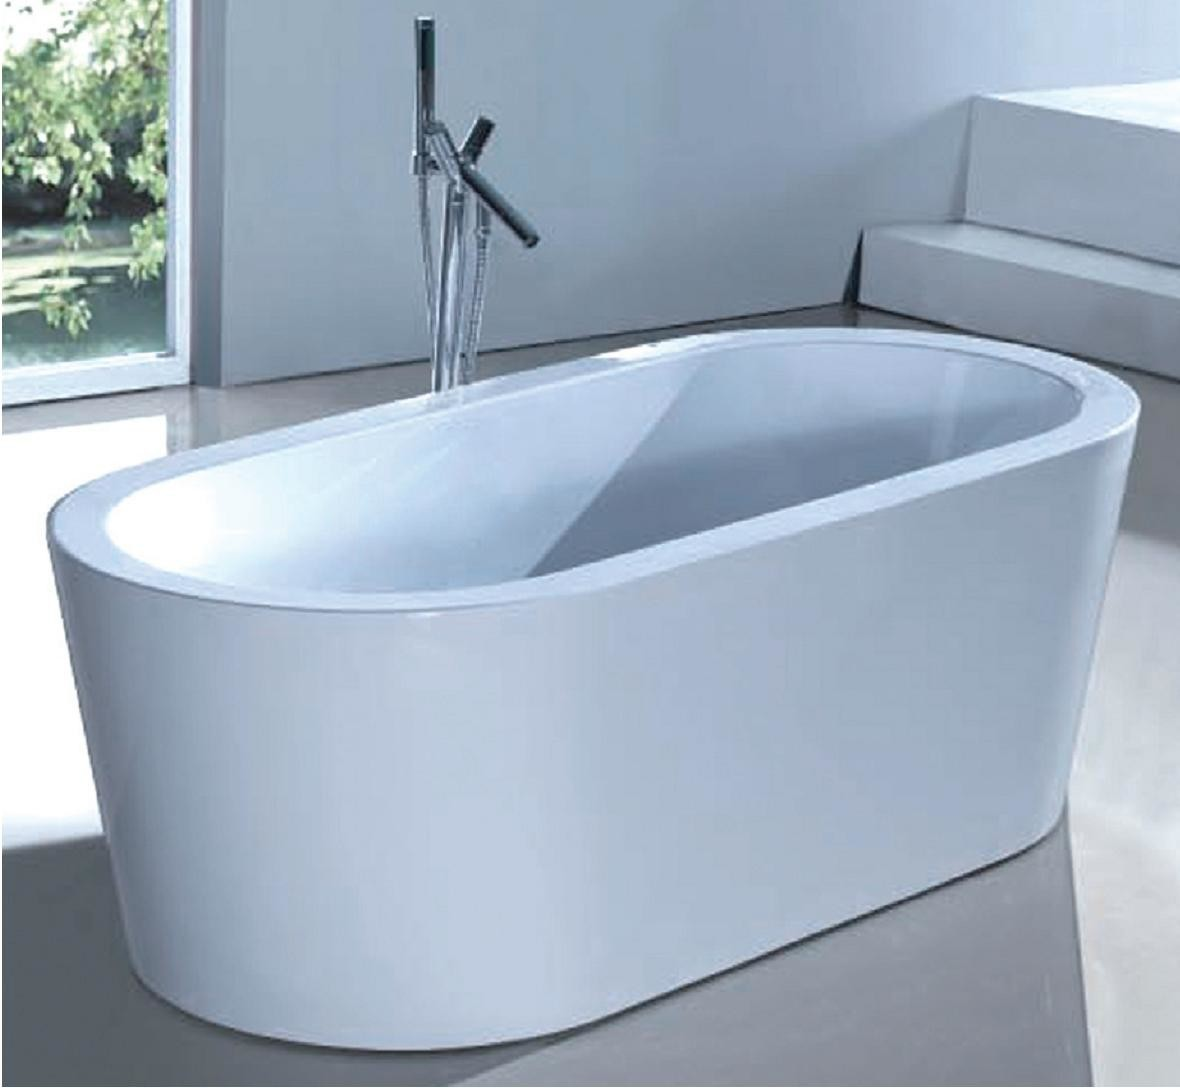 Bath tub picture for category products by glass white for Oval tub sizes